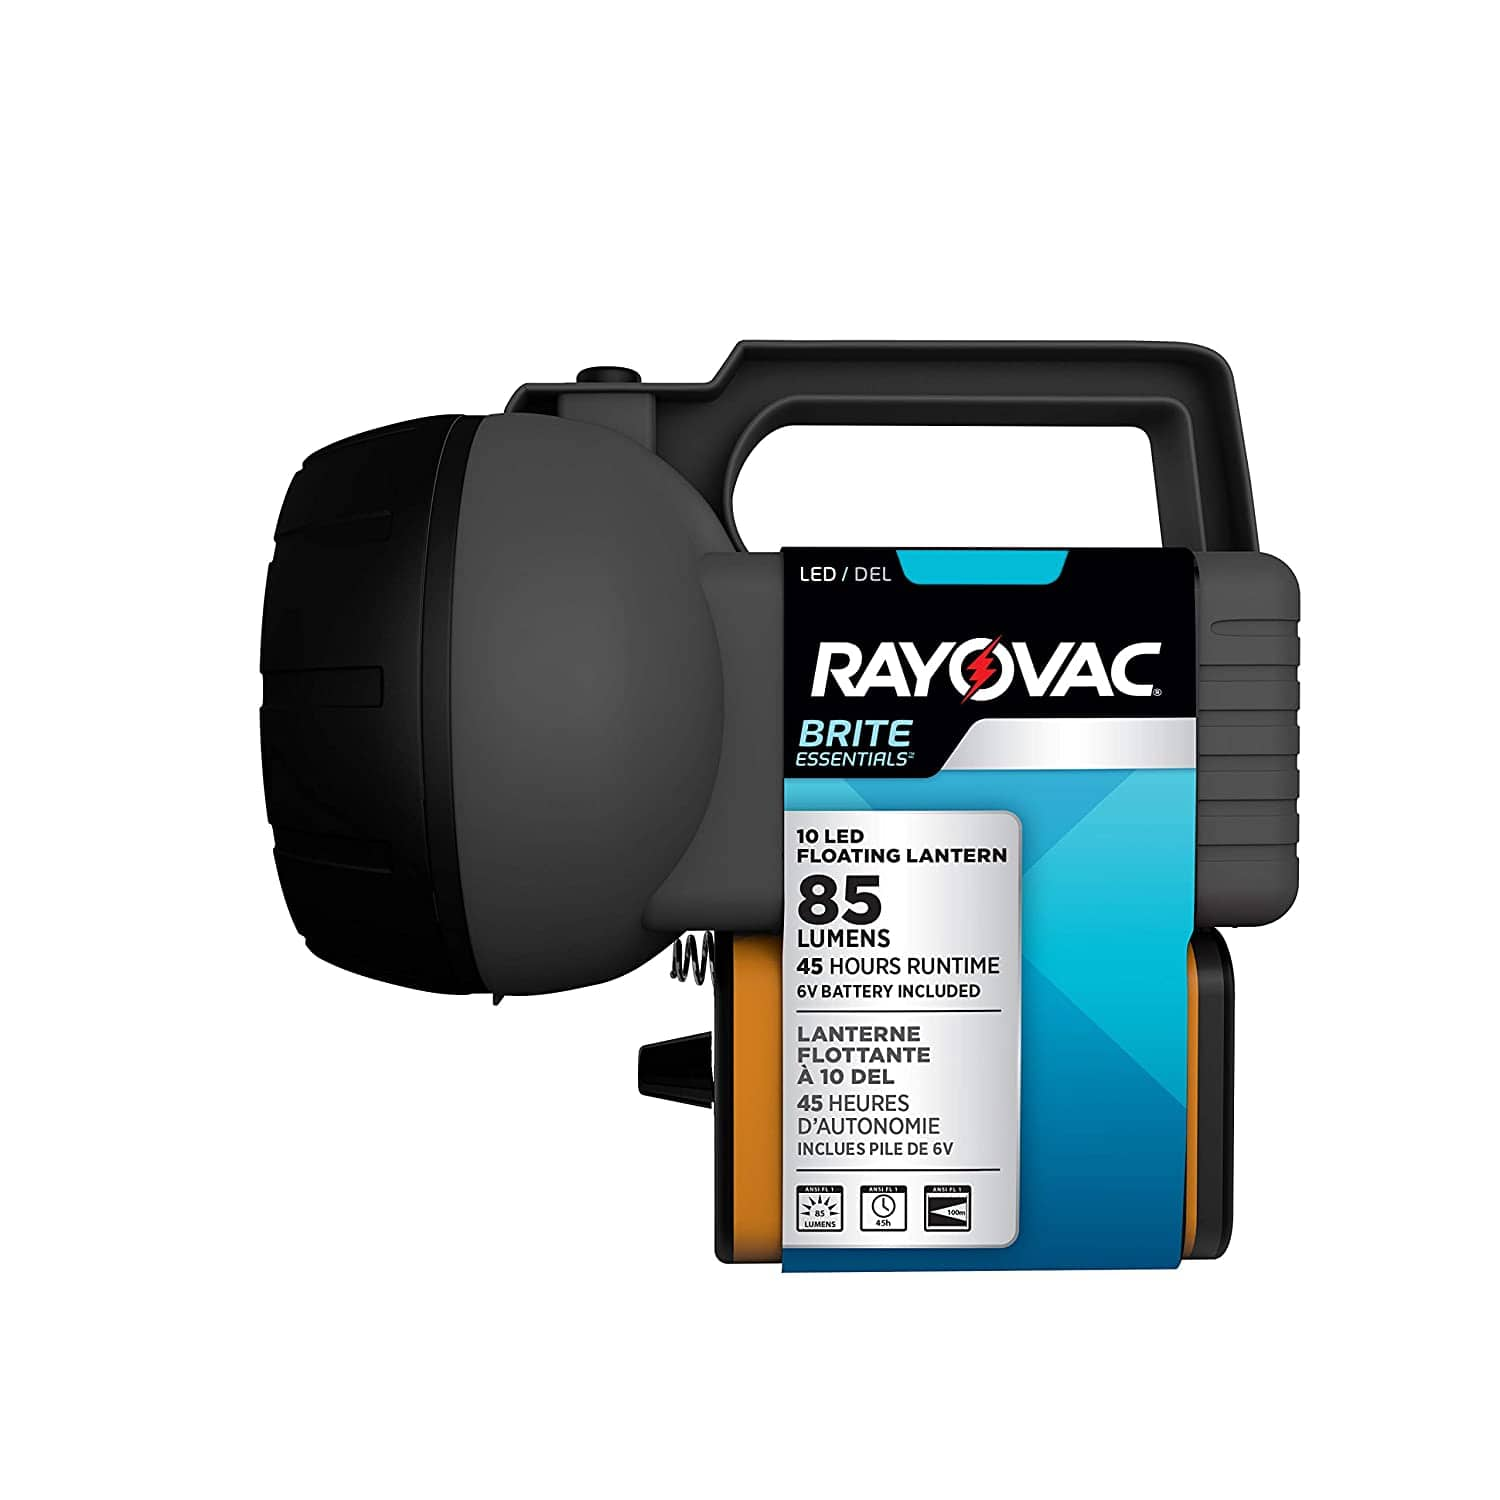 RAYOVAC Floating LED Lantern Flashlight, 6V Battery Included, Superb Battery Life, Floats For Easy Water Recovery, Emergency Light $4.92 Shipped Prime 50% off